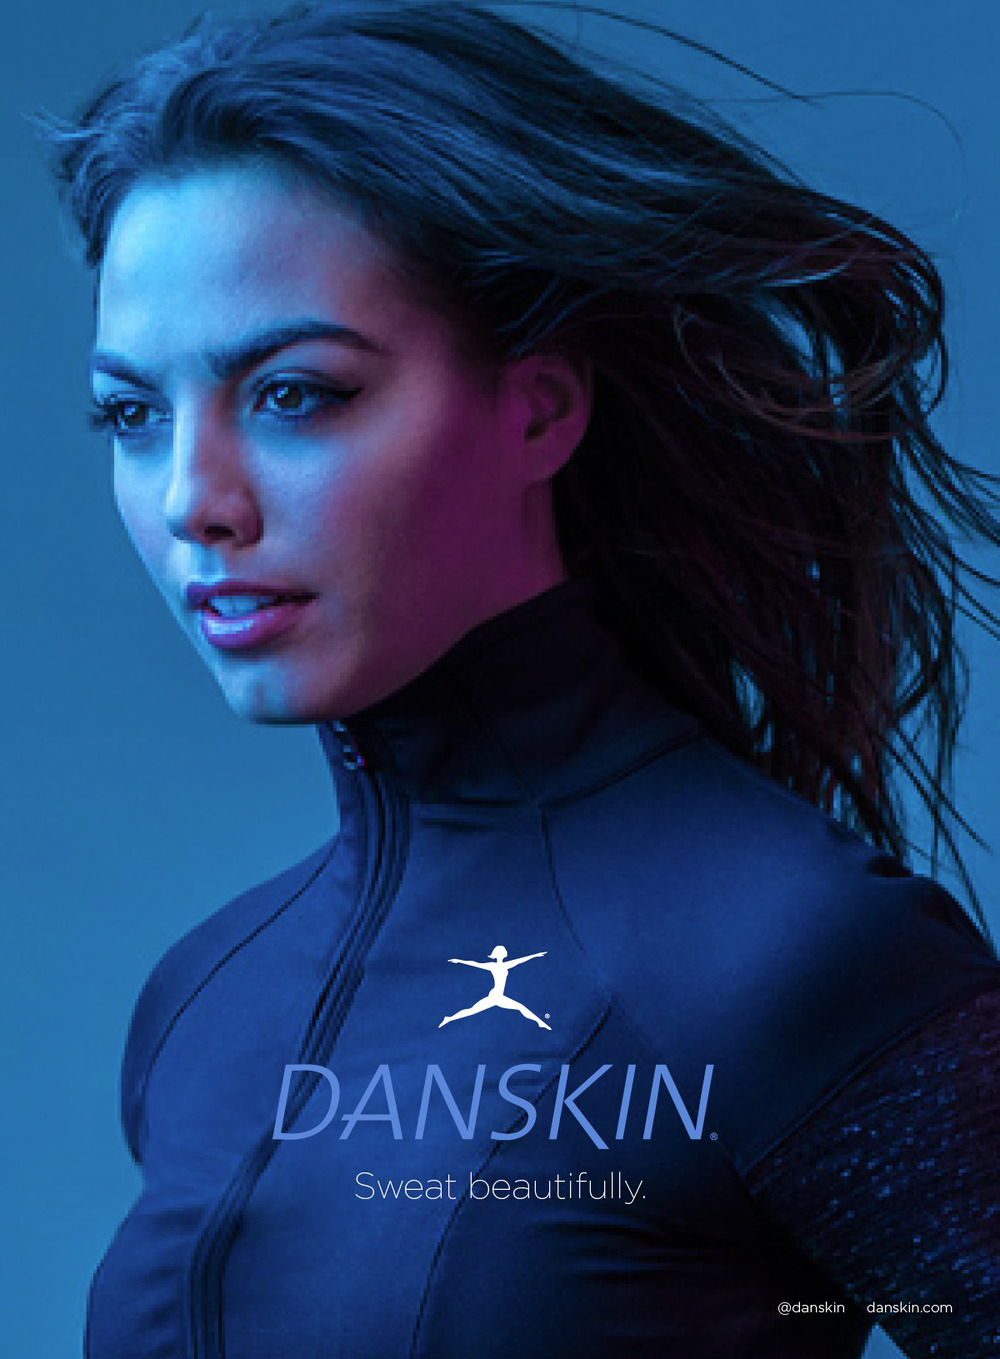 150115_Danskin_SP15_Layouts7.jpg